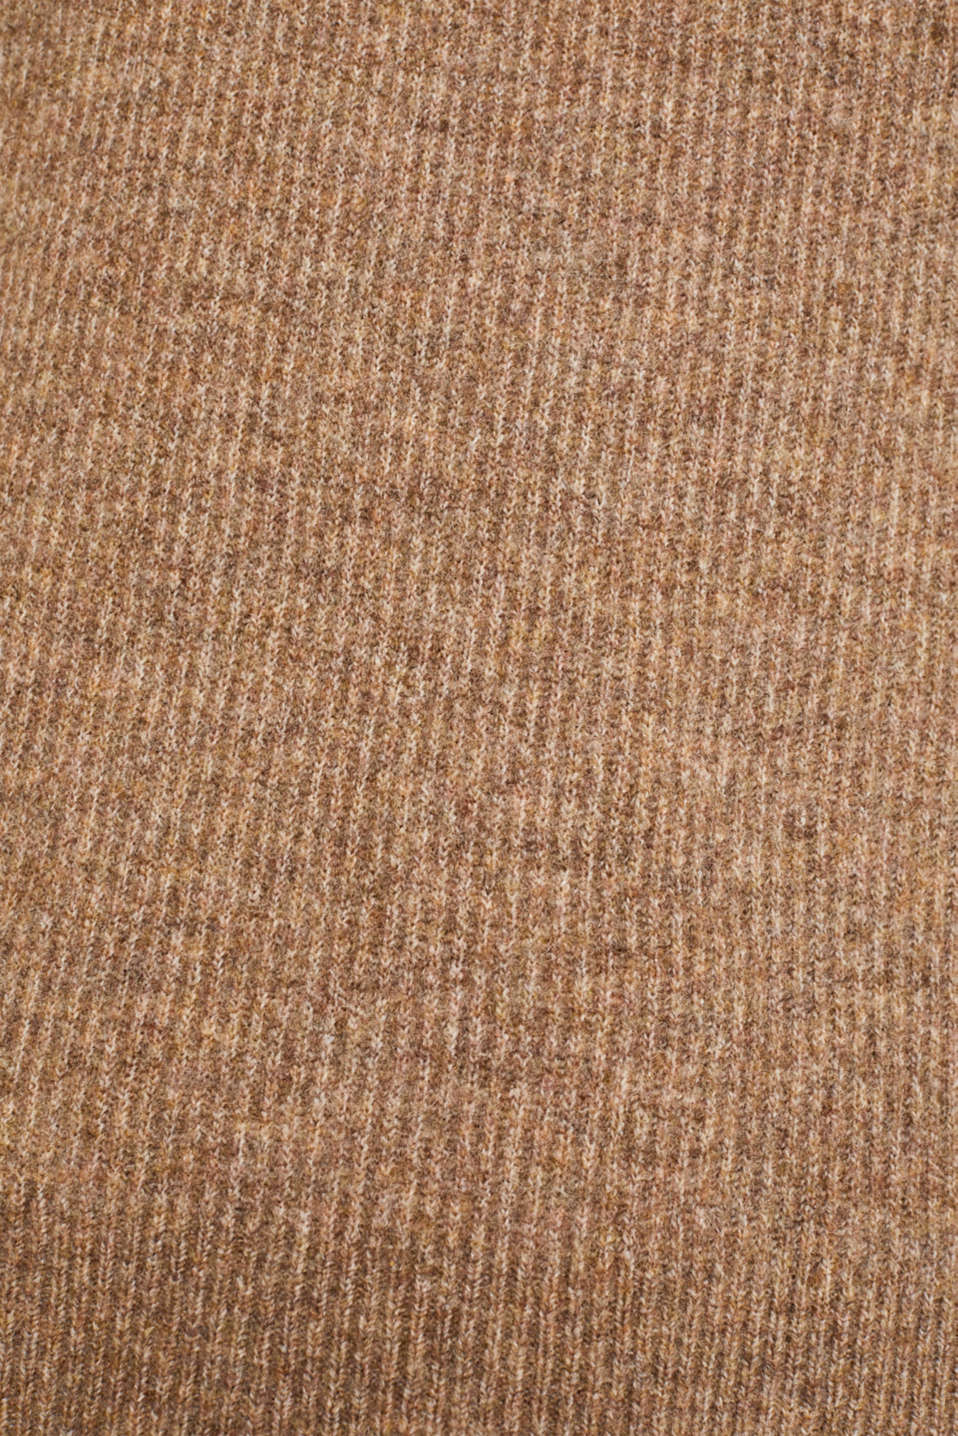 Polo neck jumper with racing stripes and wool, CAMEL 4, detail image number 4